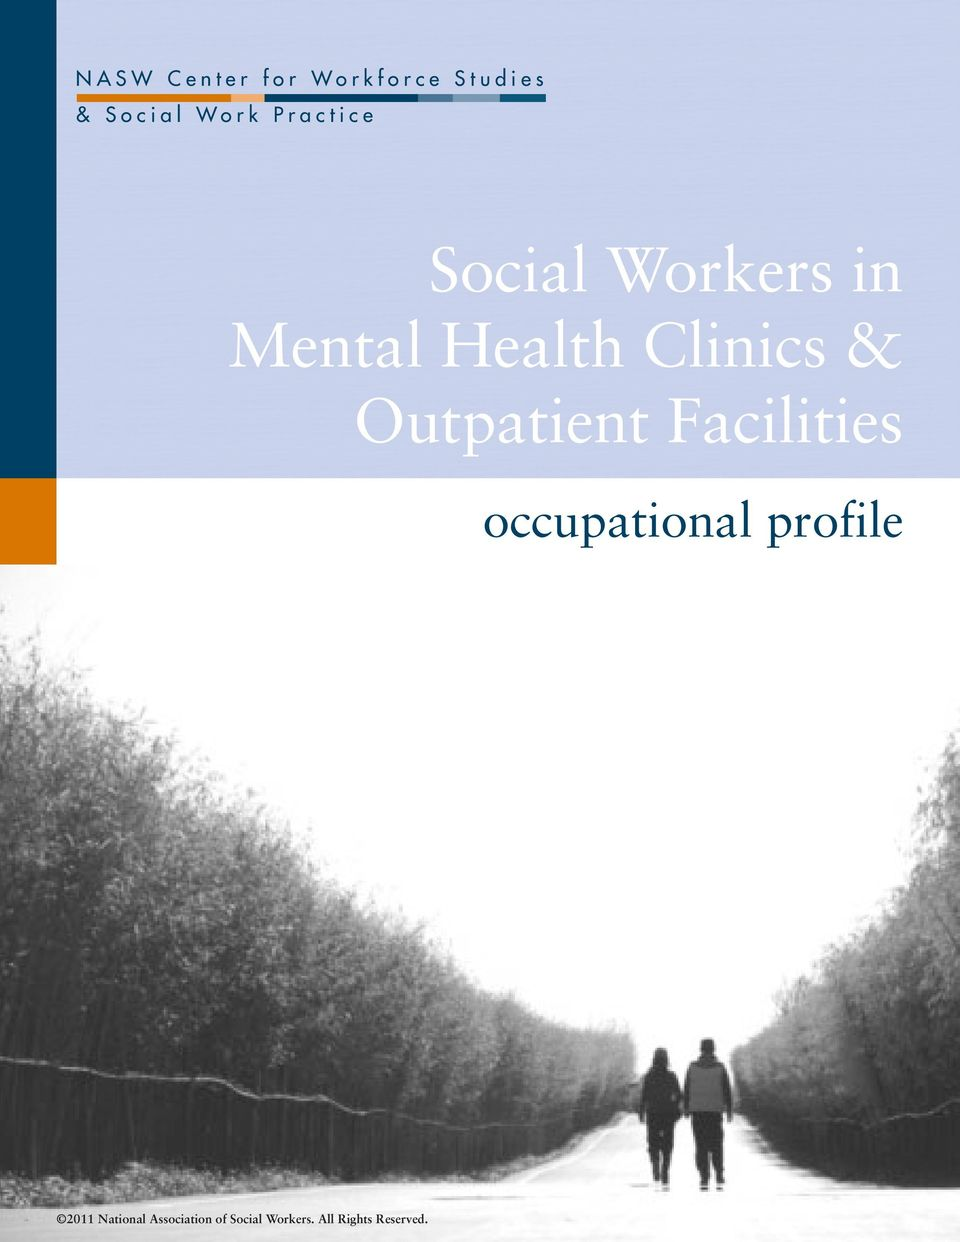 Health Clinics & Outpatient Facilities occupational profile